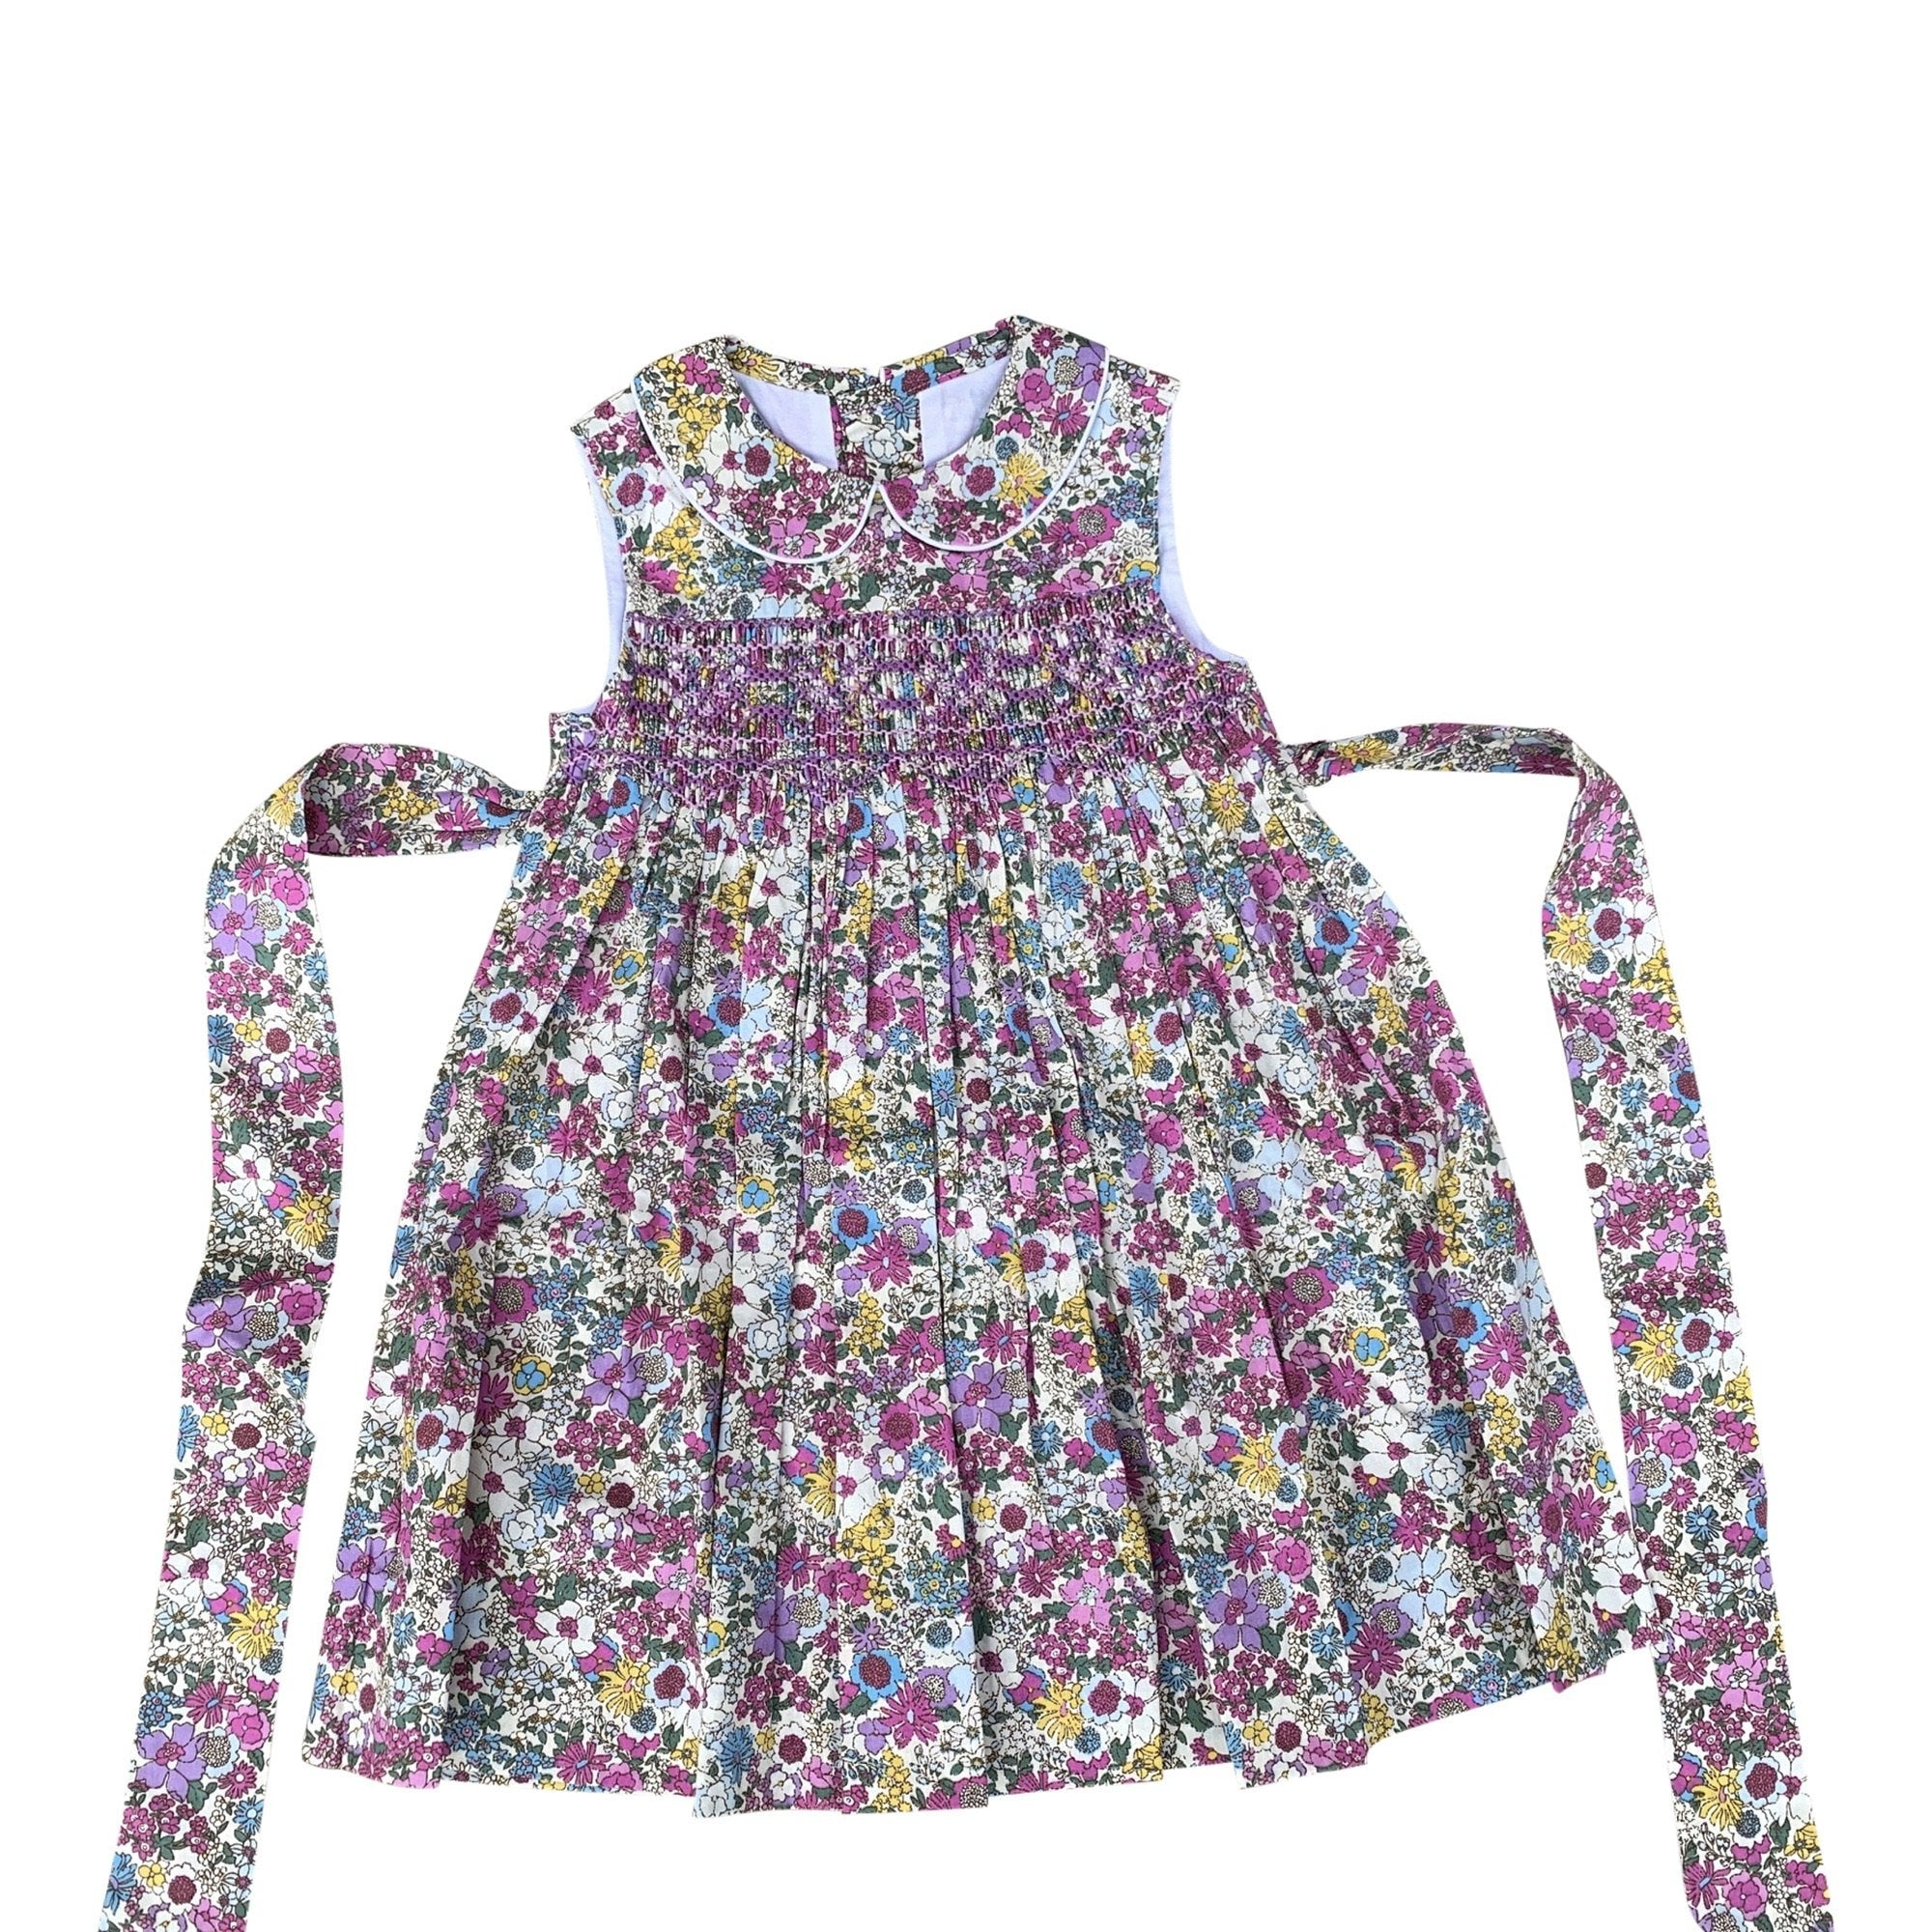 BELLA PURPLE LIBERTY PRINT SMOCK DRESS